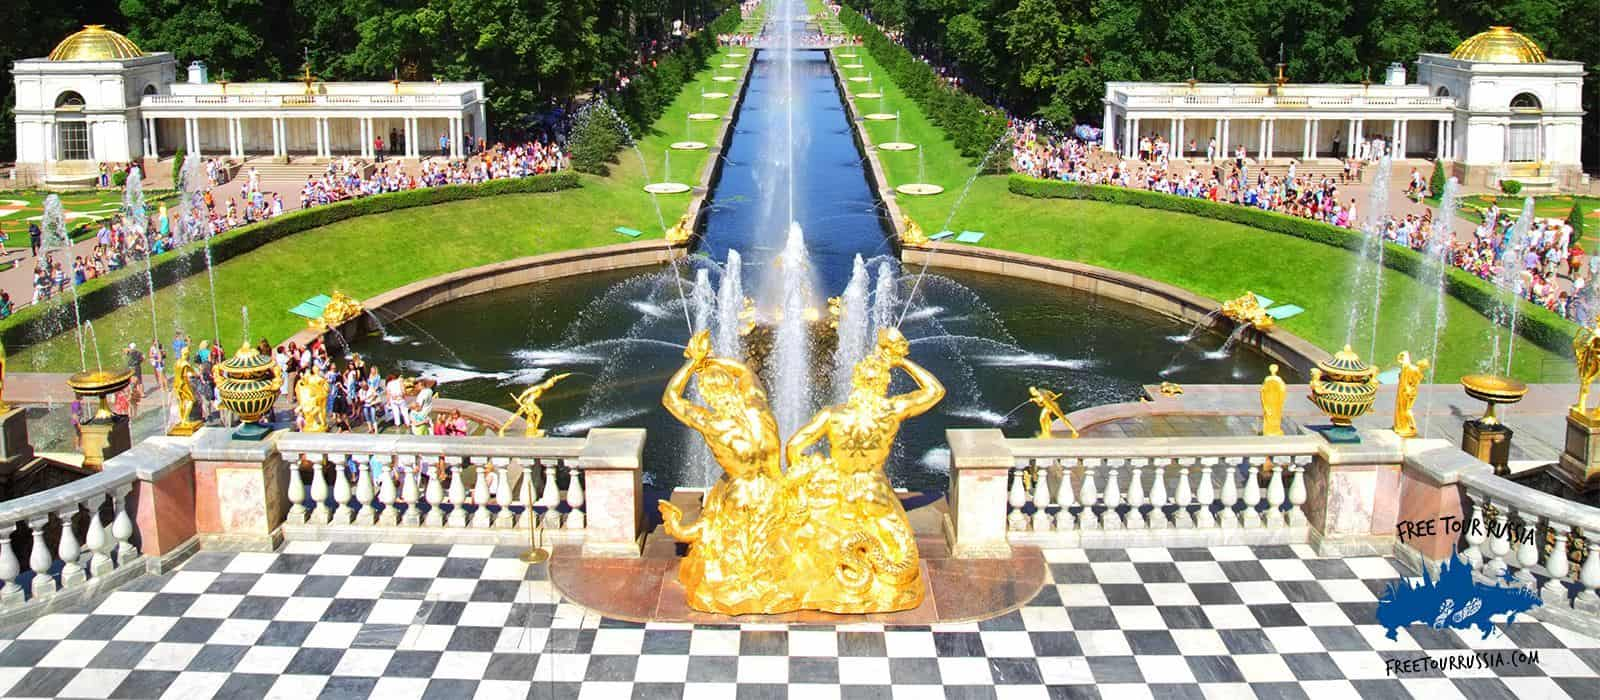 Tour through Gardens and Fountains of Peterhof